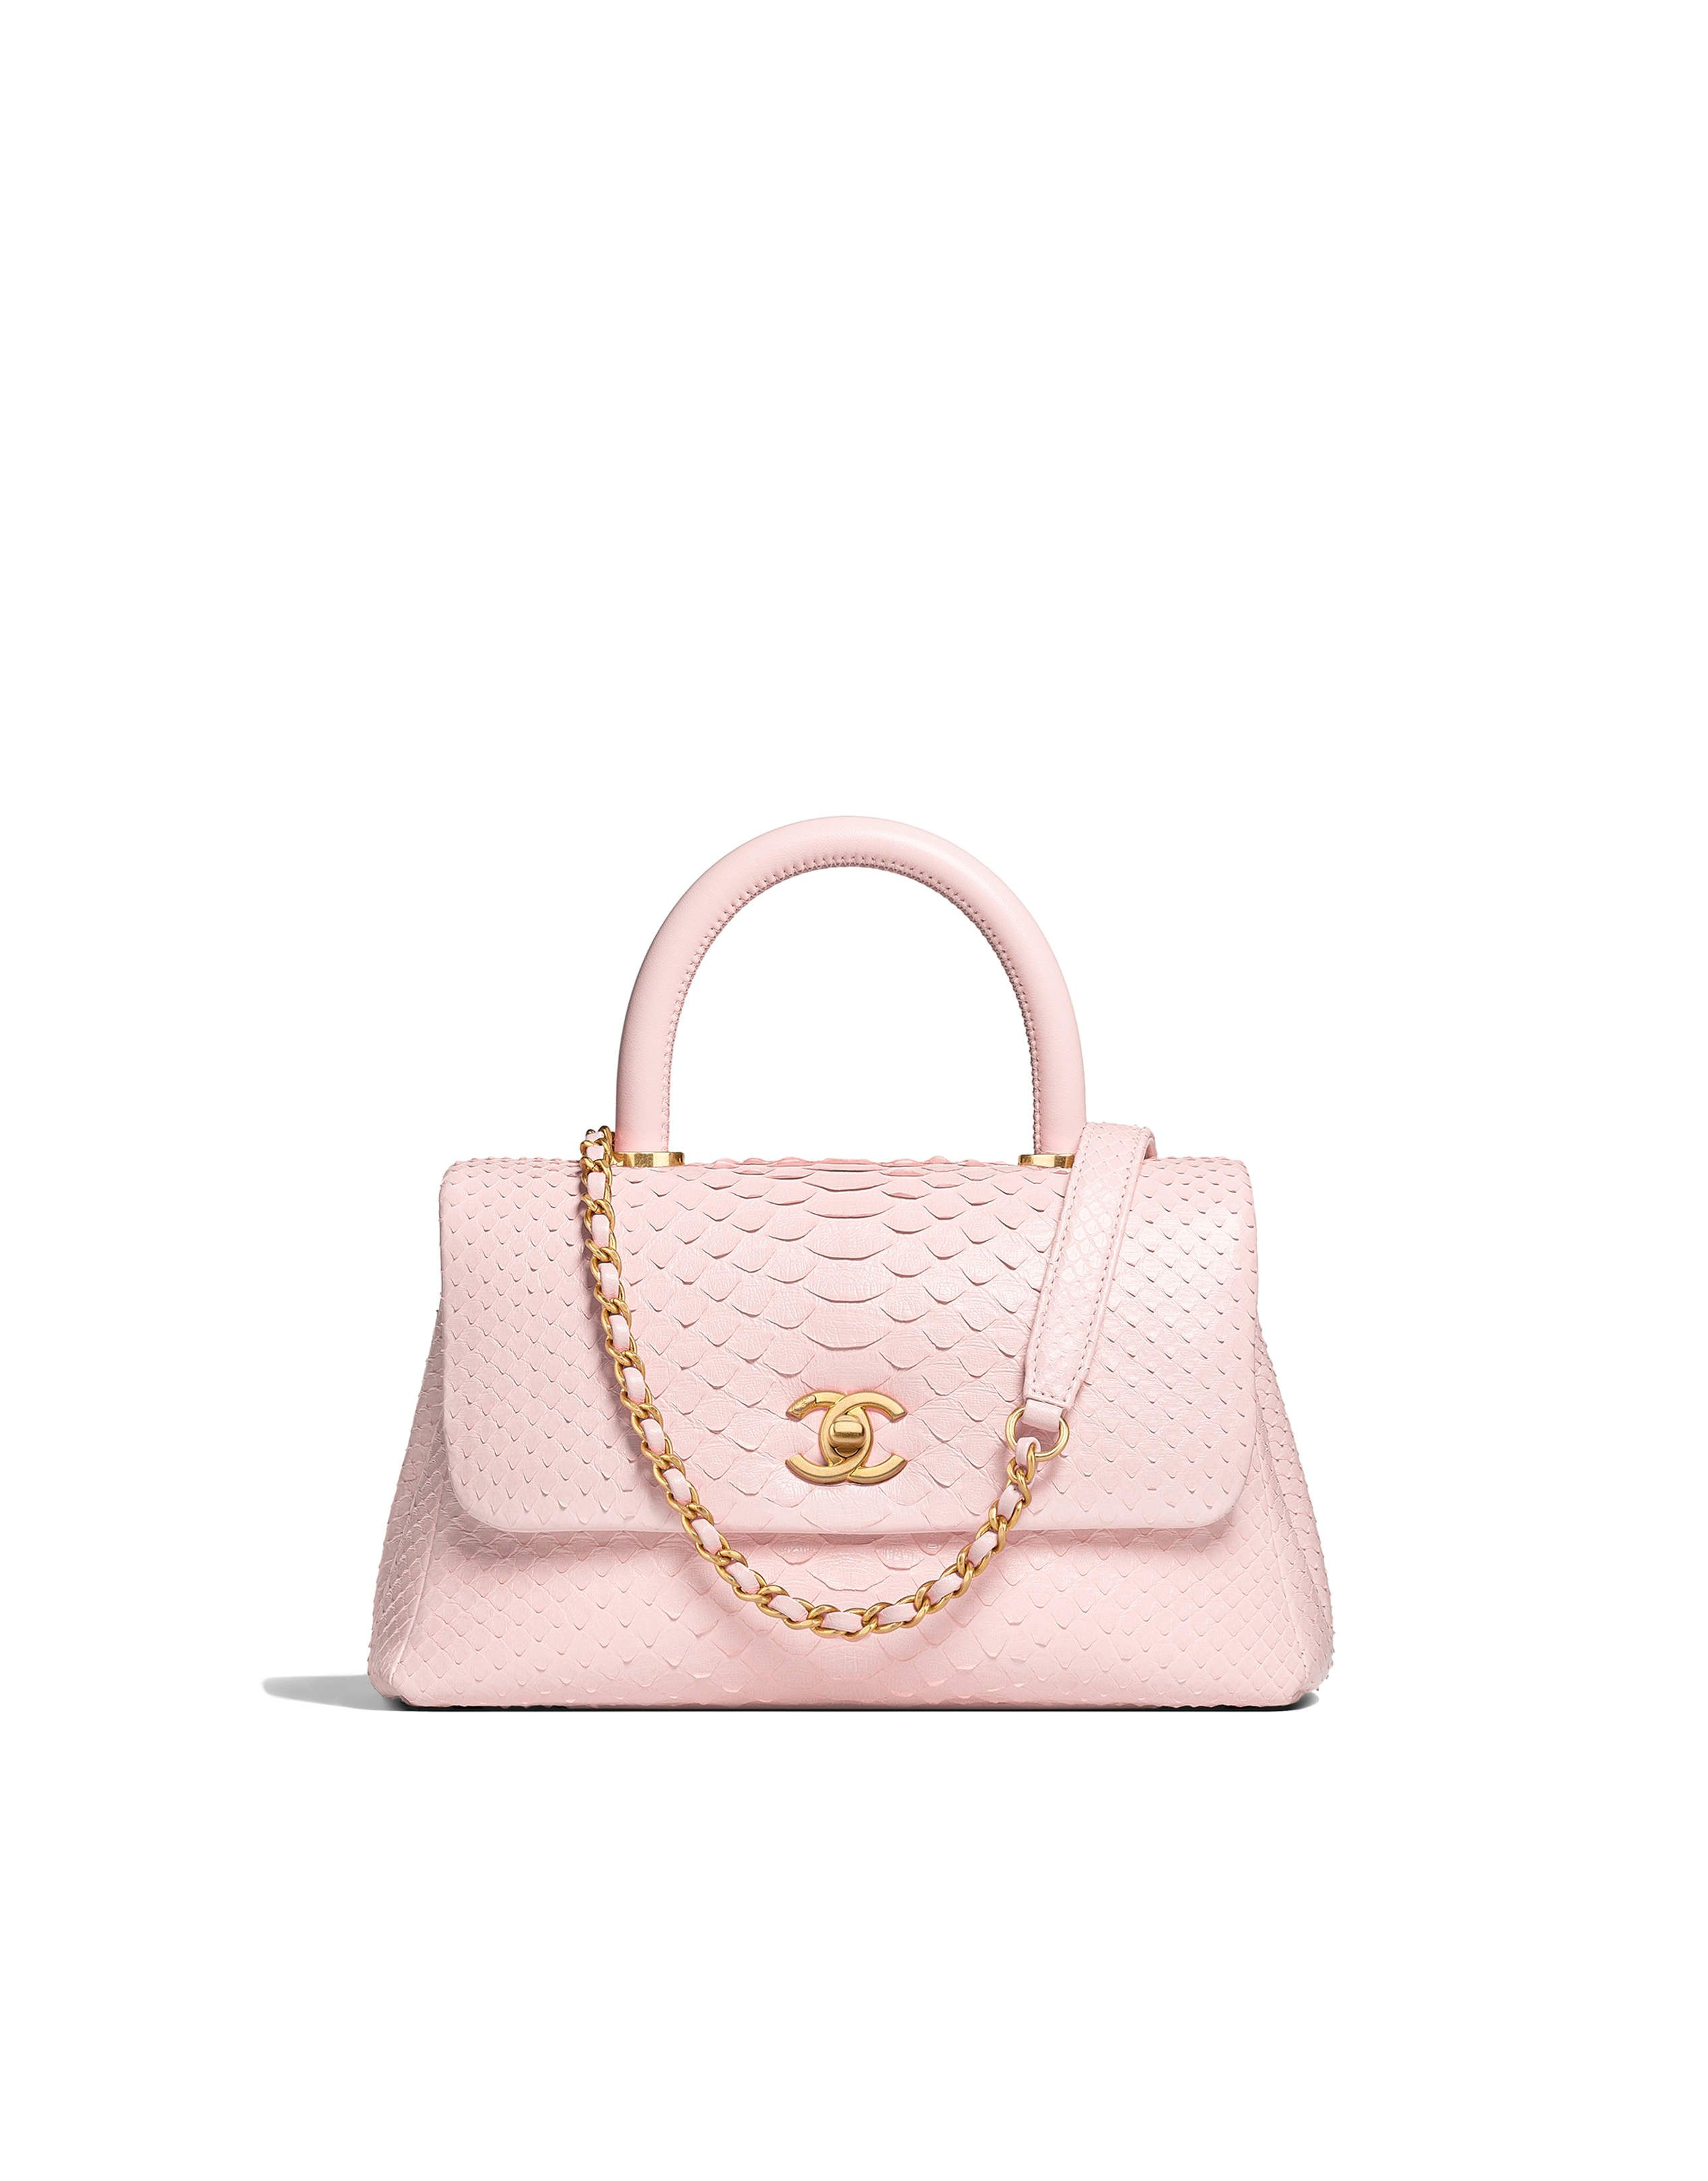 b48a8287427d Chanel - Cruise 2017/2018 | Baby pink flap bag with top handle ...